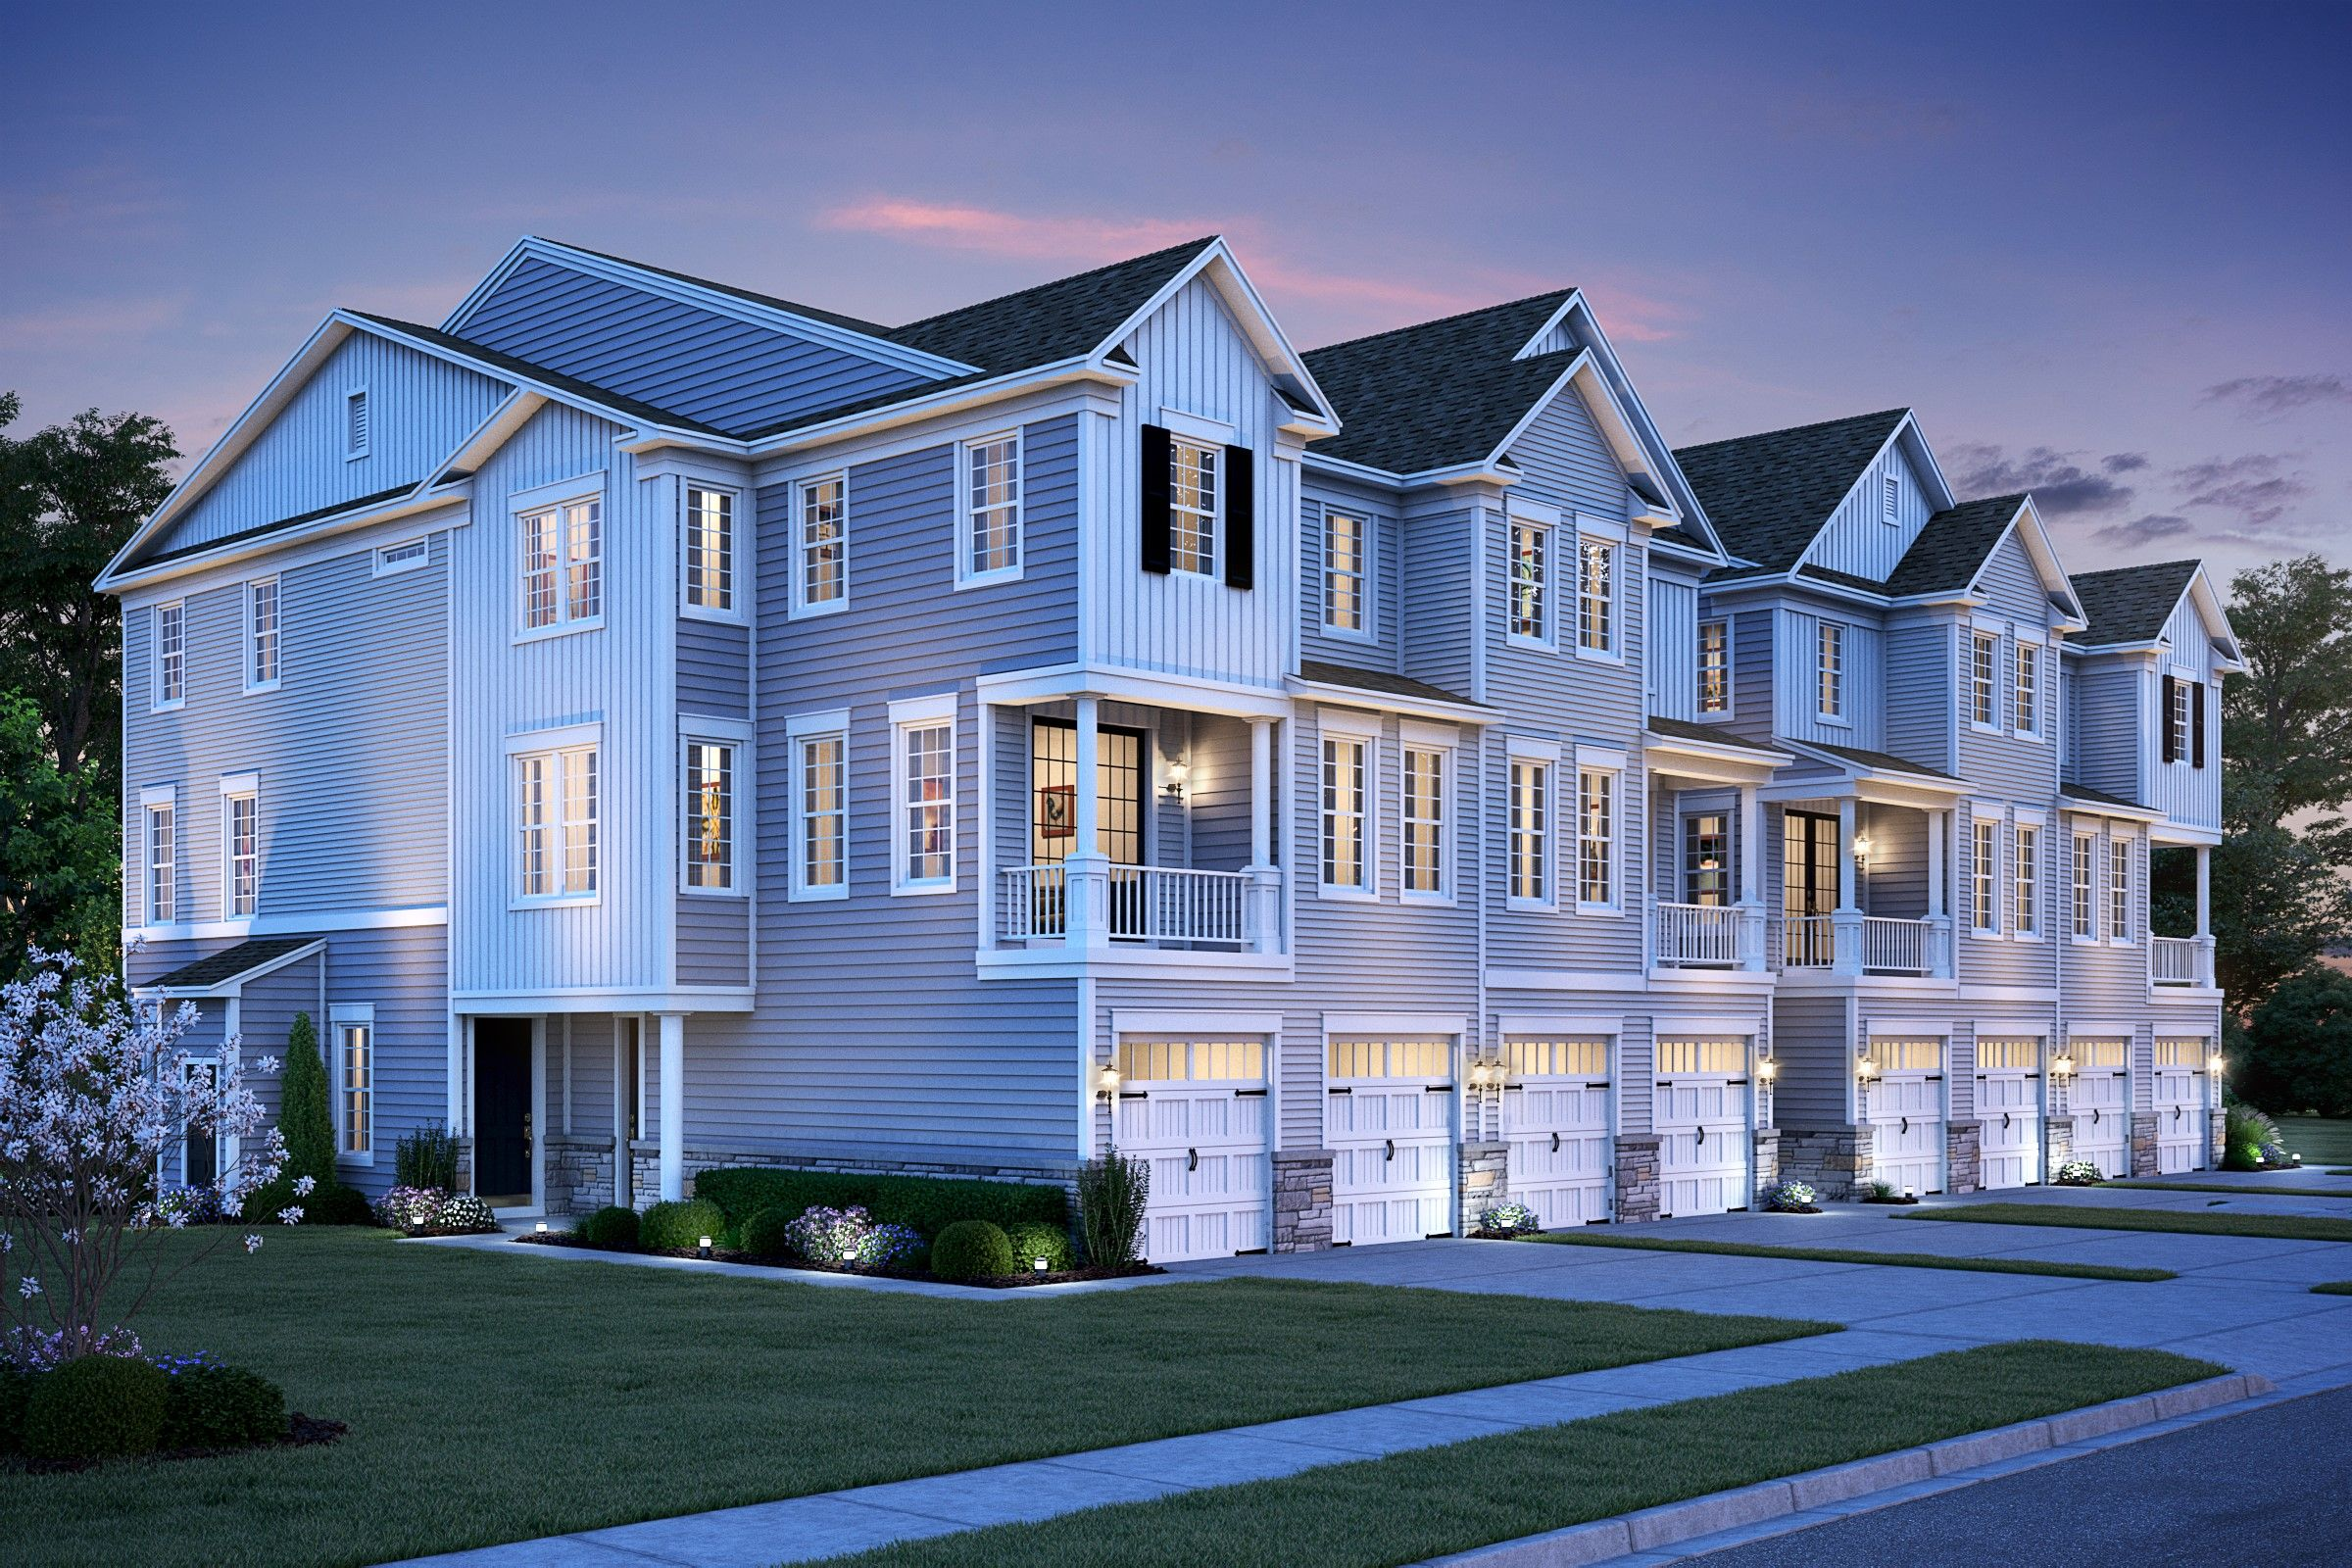 New Homes In Perth Amboy Nj 1 340 Communities Newhomesource